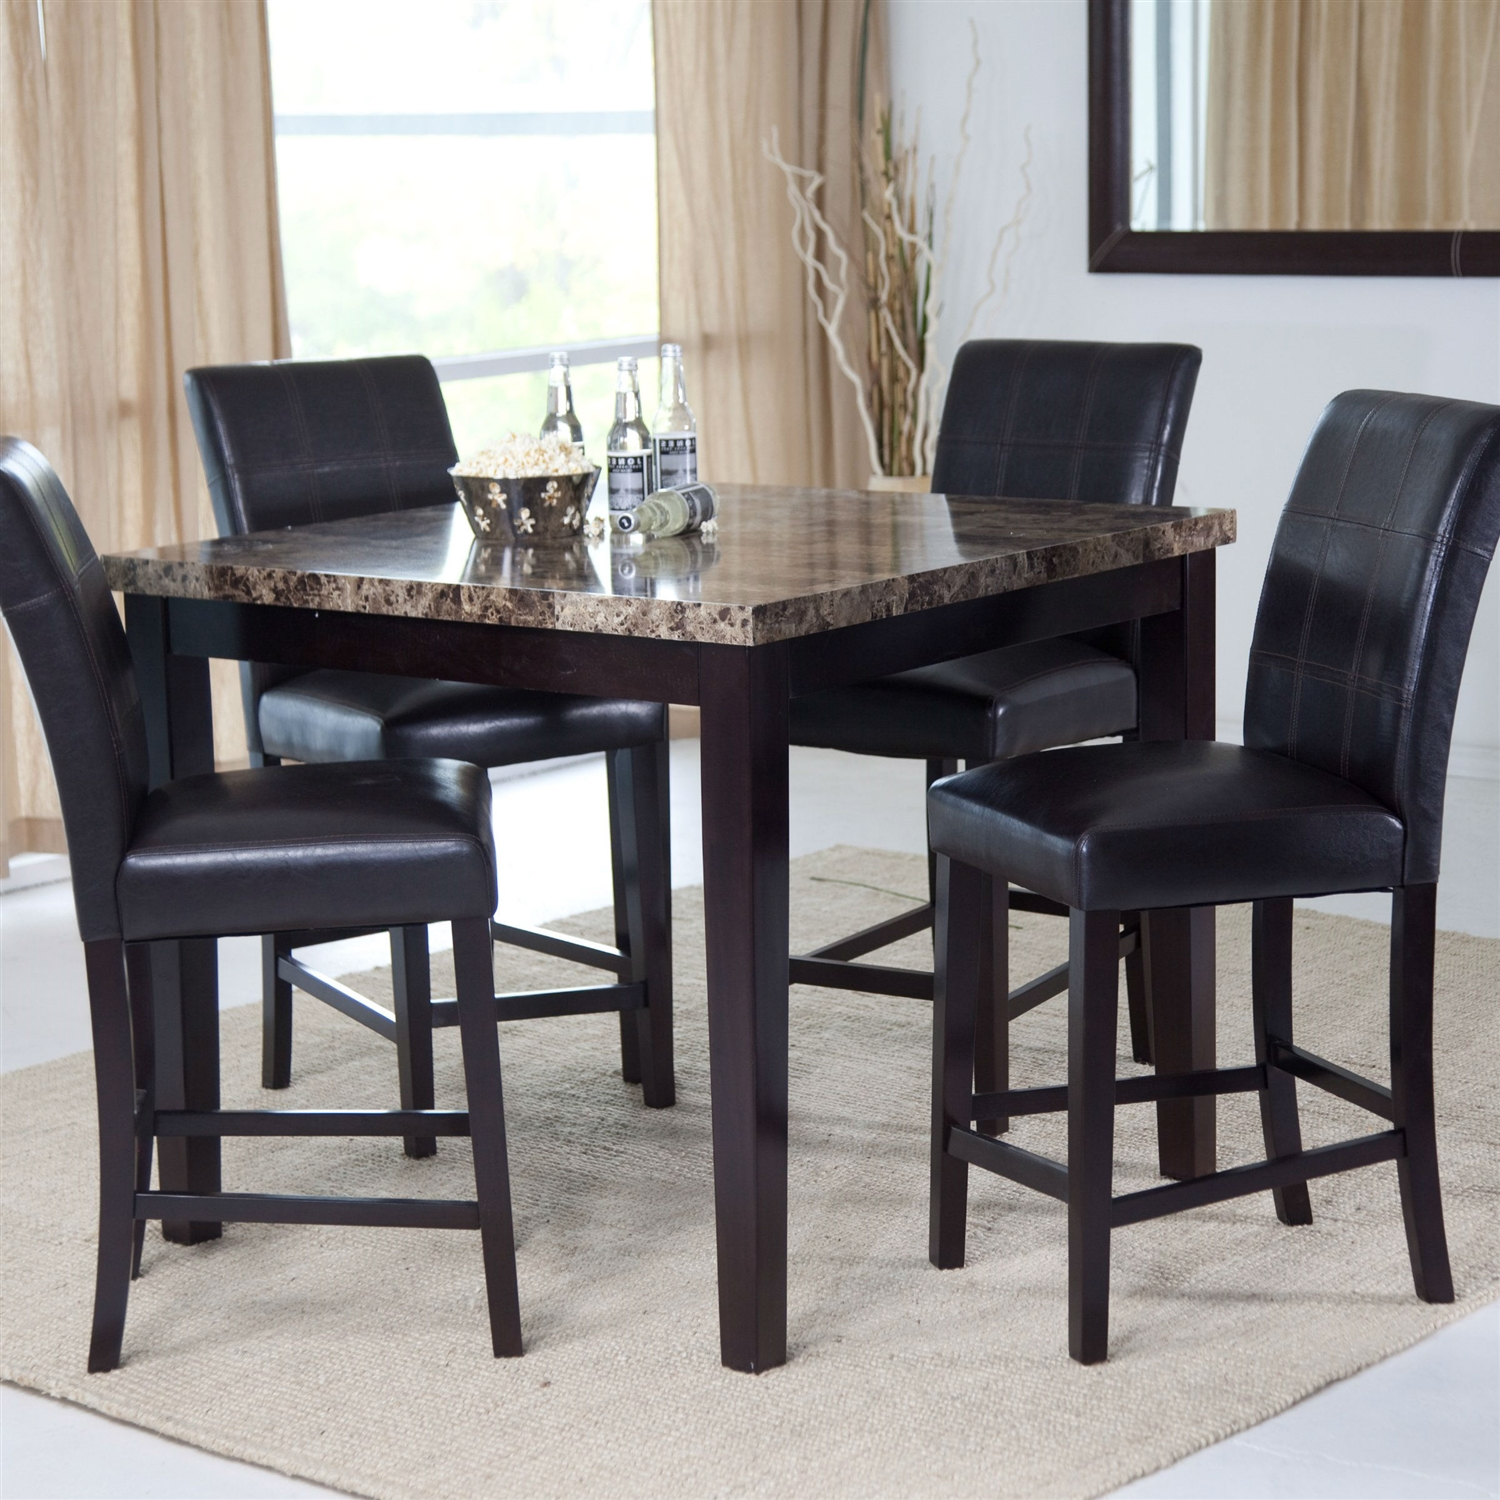 contemporary 42 x 42 inch counter height dining table with faux